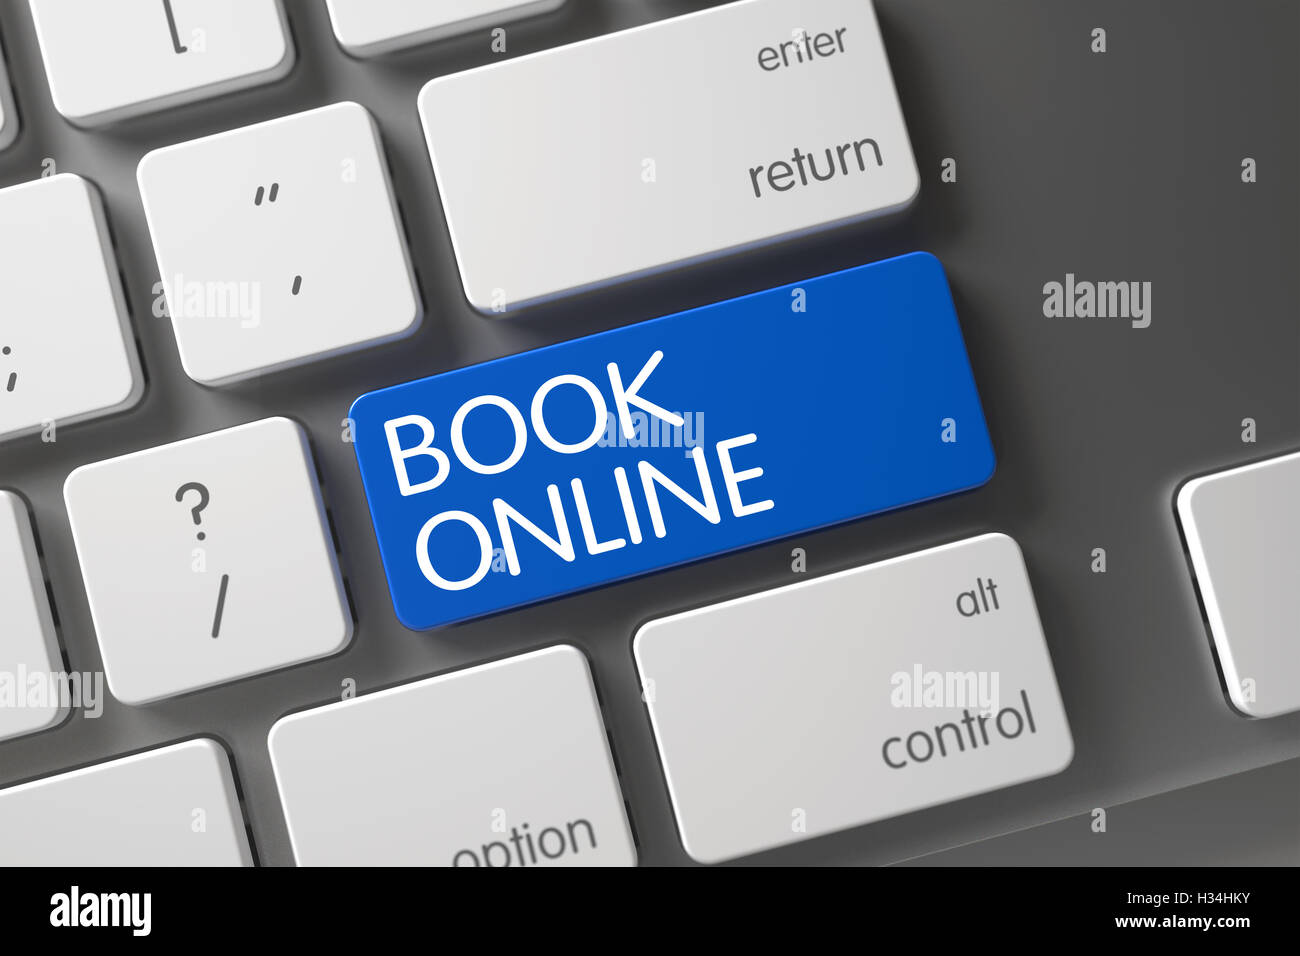 Blue Book Online Keypad on Keyboard  3D Stock Photo